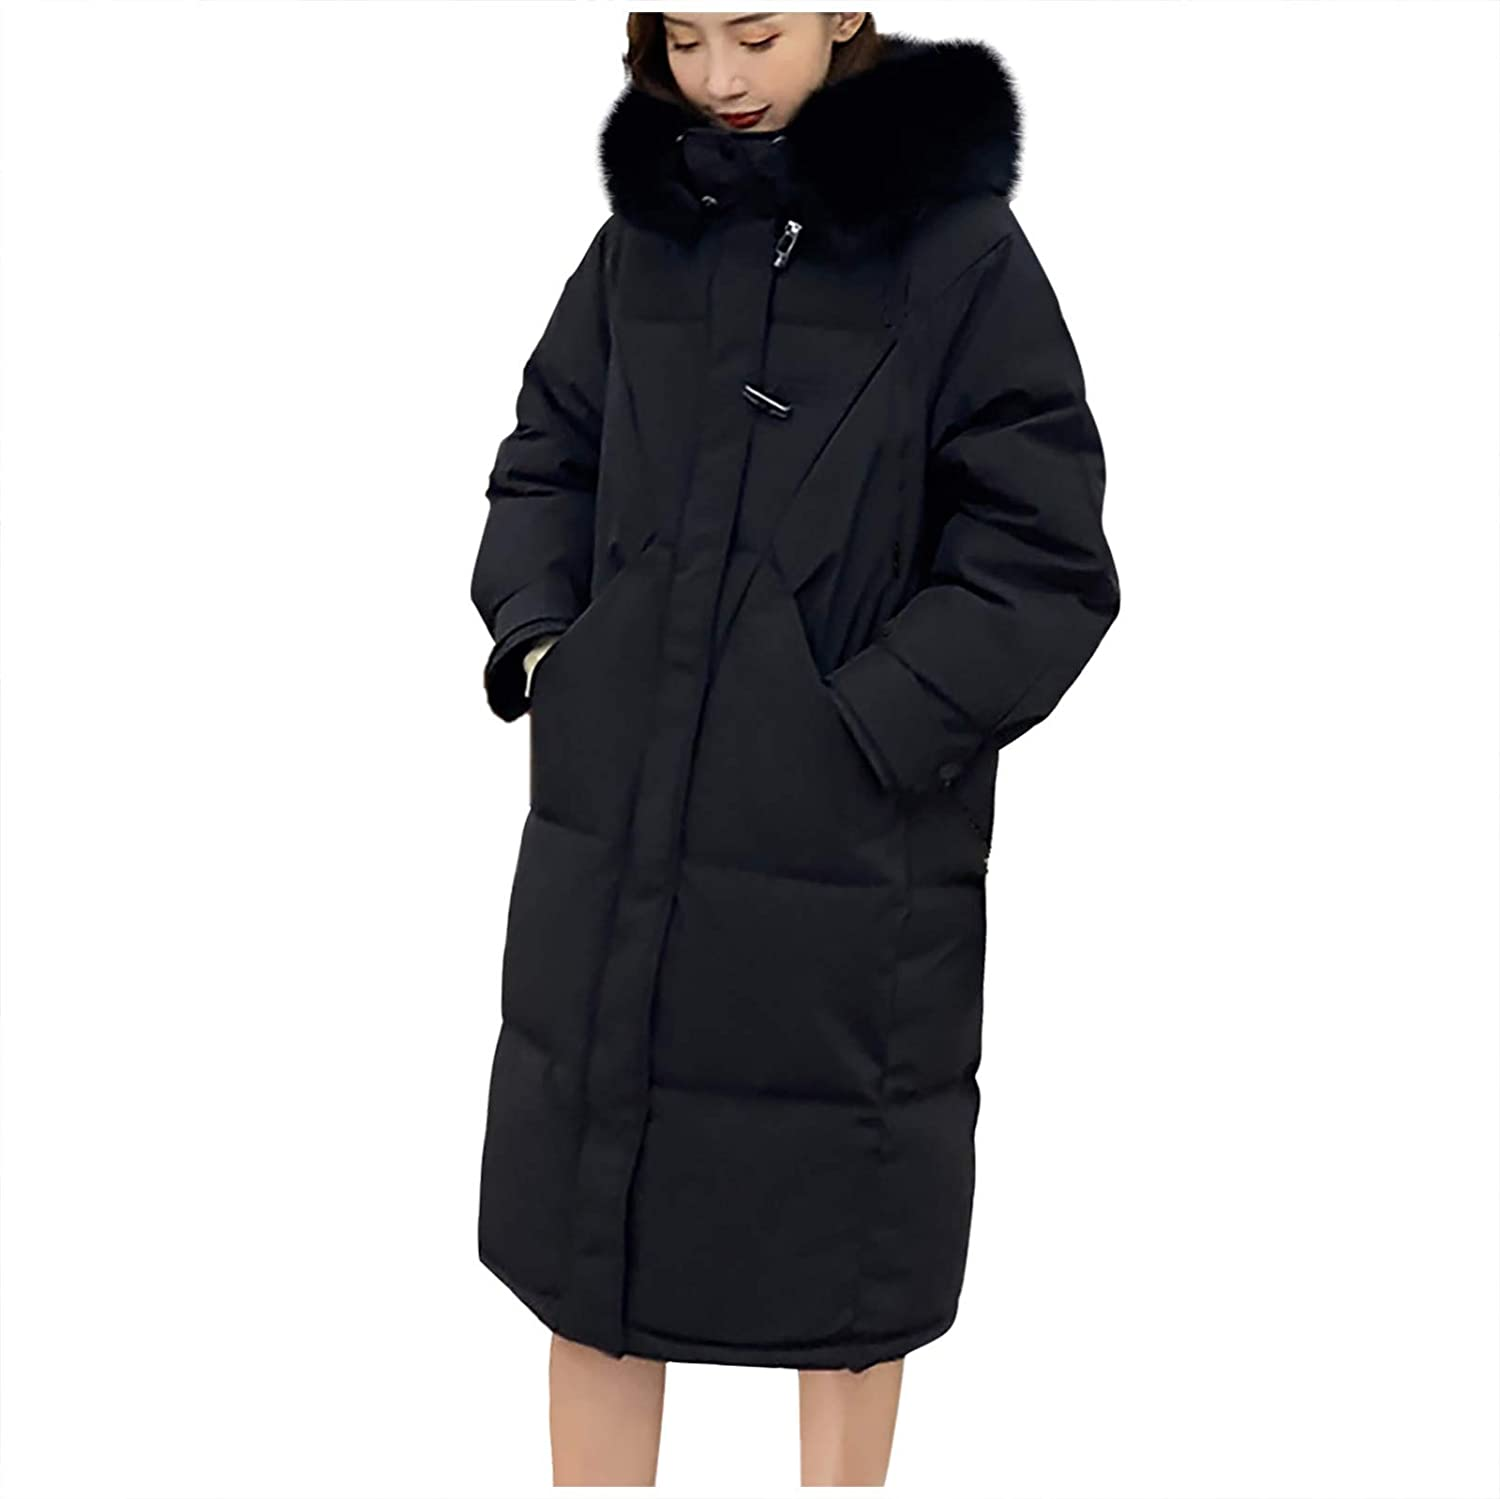 Womens Thickened Down Jacket Winter Coats ,Long-Sleeve Full-Zip Hooded Outerwear